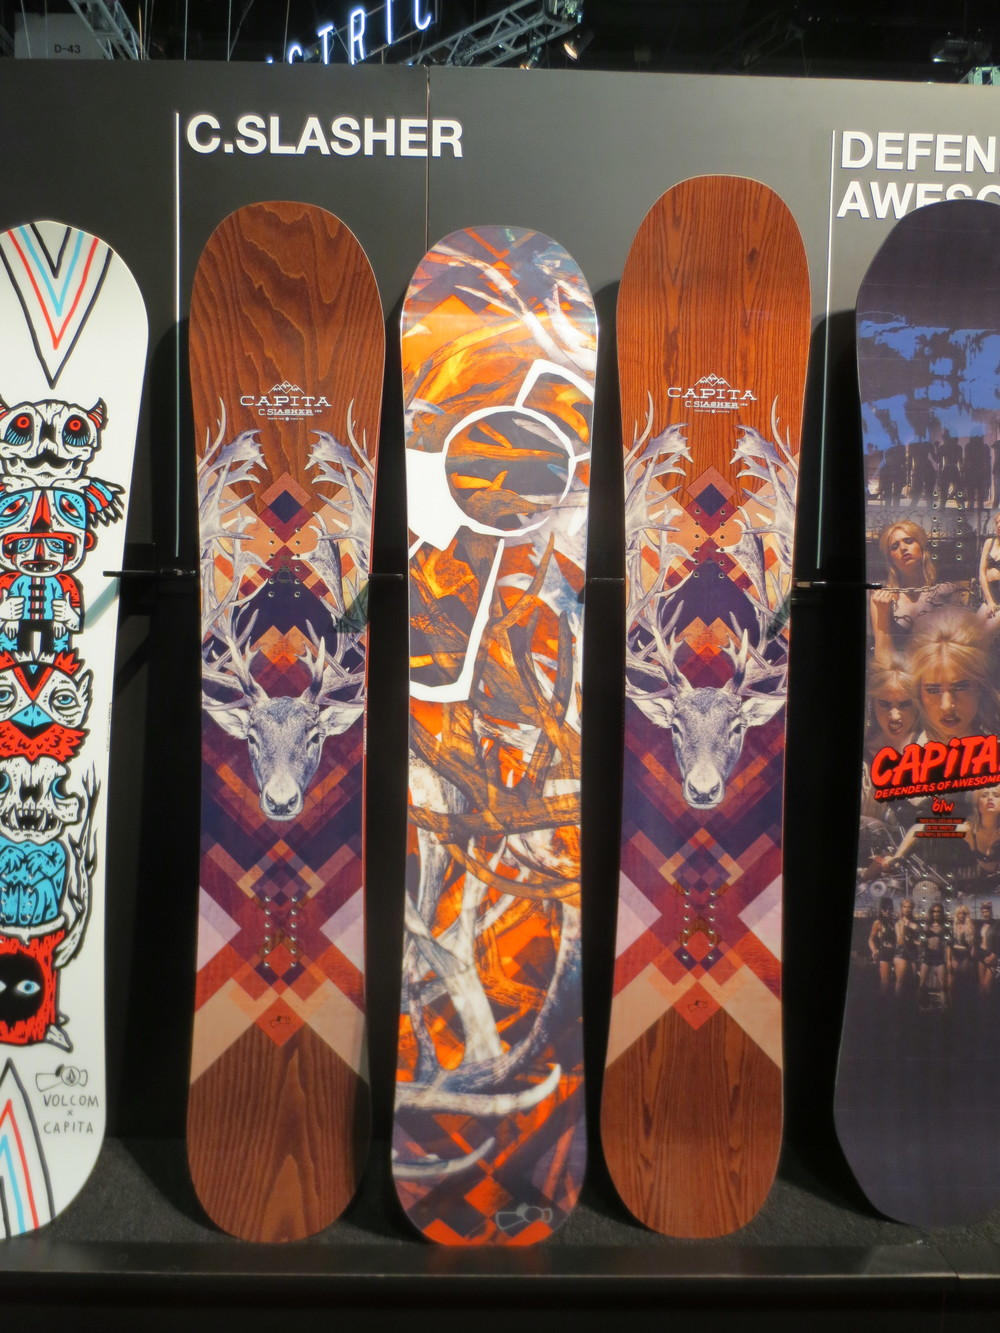 The new Capita Charlie Slasher with the antler-camo base graphic. Comes in a 154,158, 161, and 164.